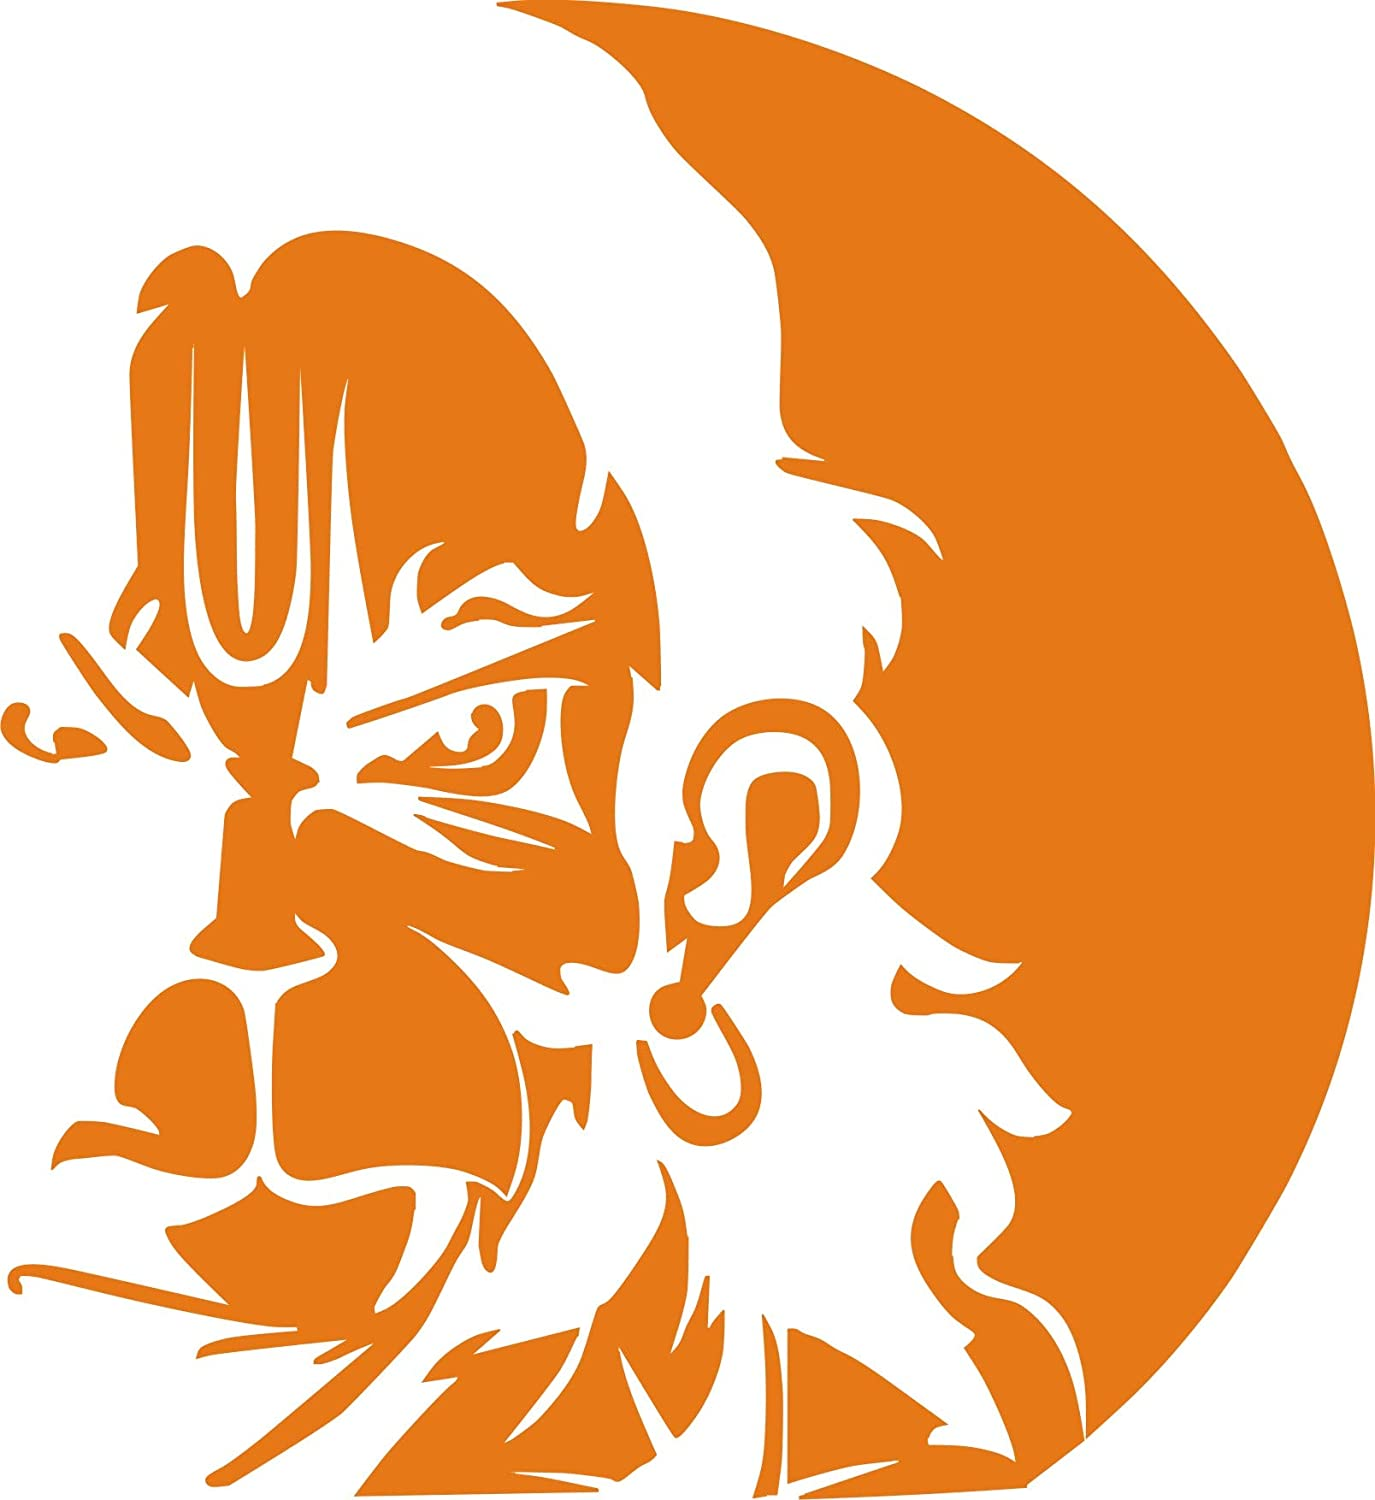 Arfa car bike stickers angry hanuman ji for stylish look 8 x 8 inch orange colour 1 piece amazon in car motorbike